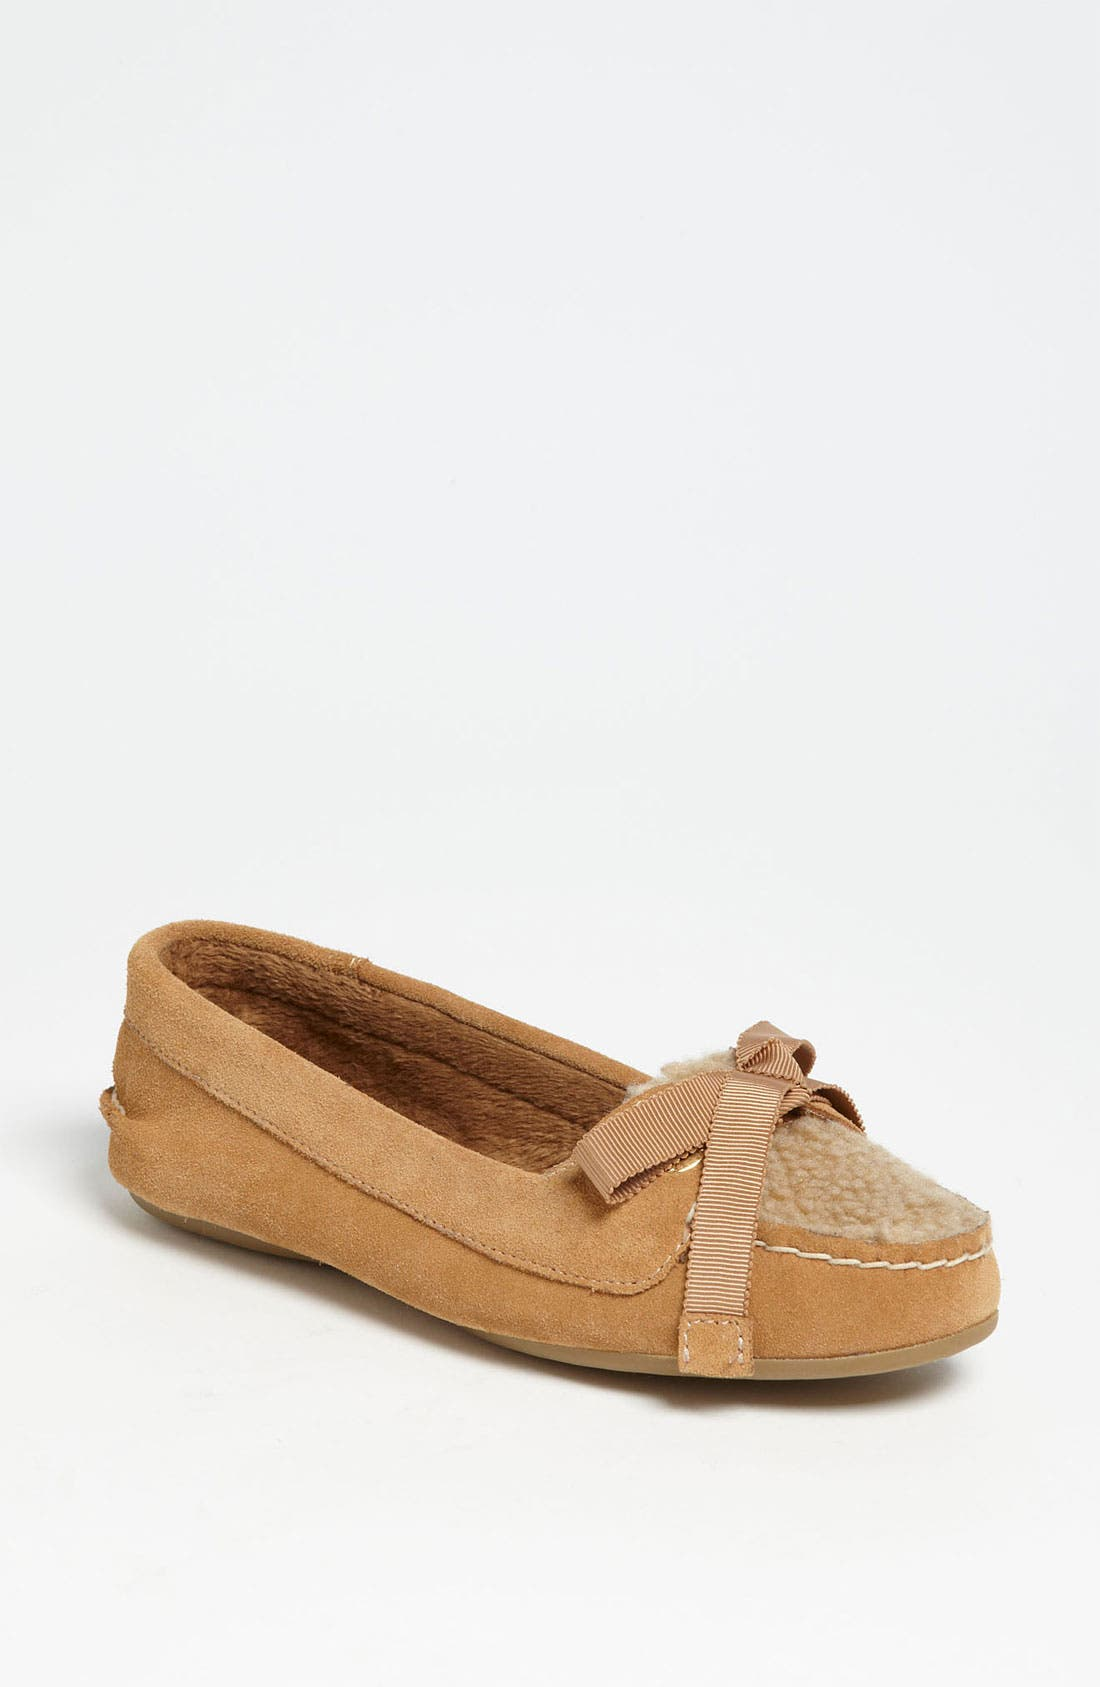 Alternate Image 1 Selected - Sperry Top-Sider® 'Skipper' Slipper